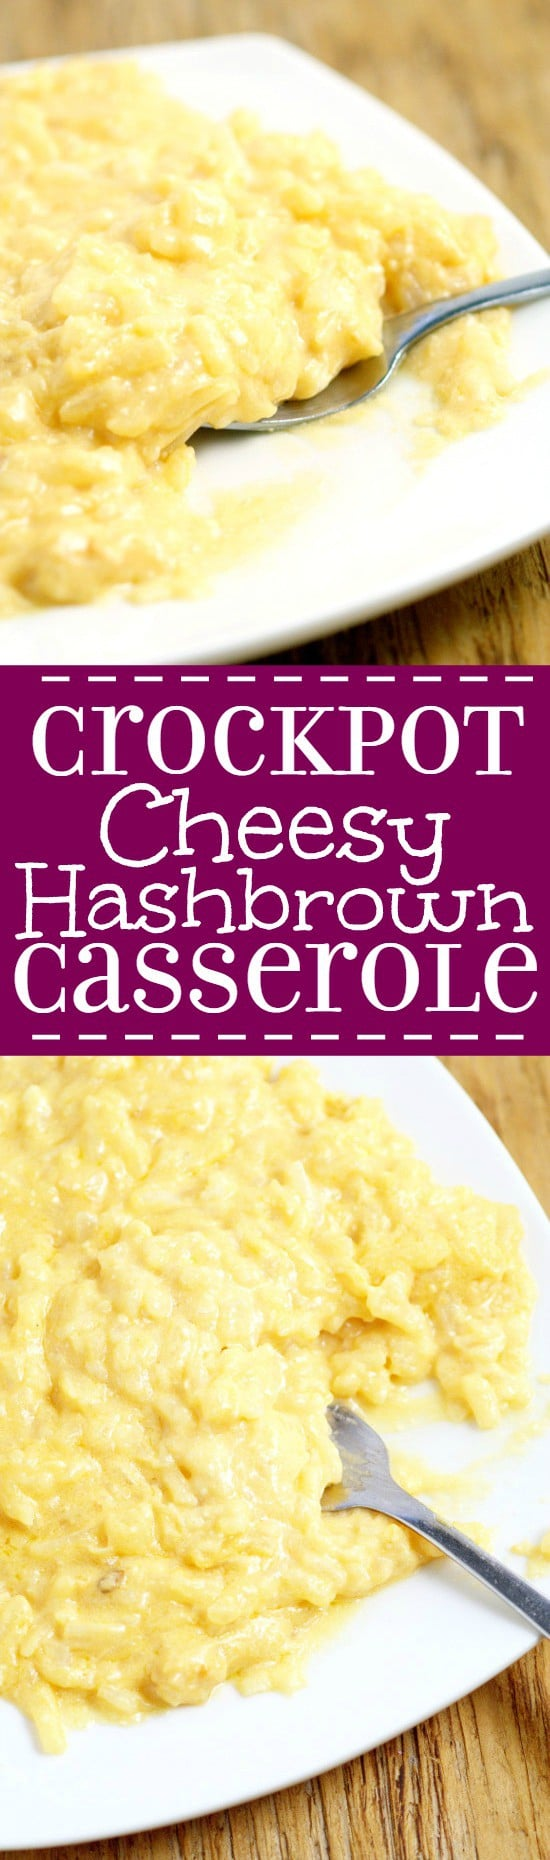 Crockpot Cheesy Hashbrown Casserole recipe is a simple, classic comfort food side dish with salty, starchy potatoes and mounds of gooey cheese. A must-try and family favorite! What a perfect potato side dish recipe! This would be great for Thanksgiving or a potluck!